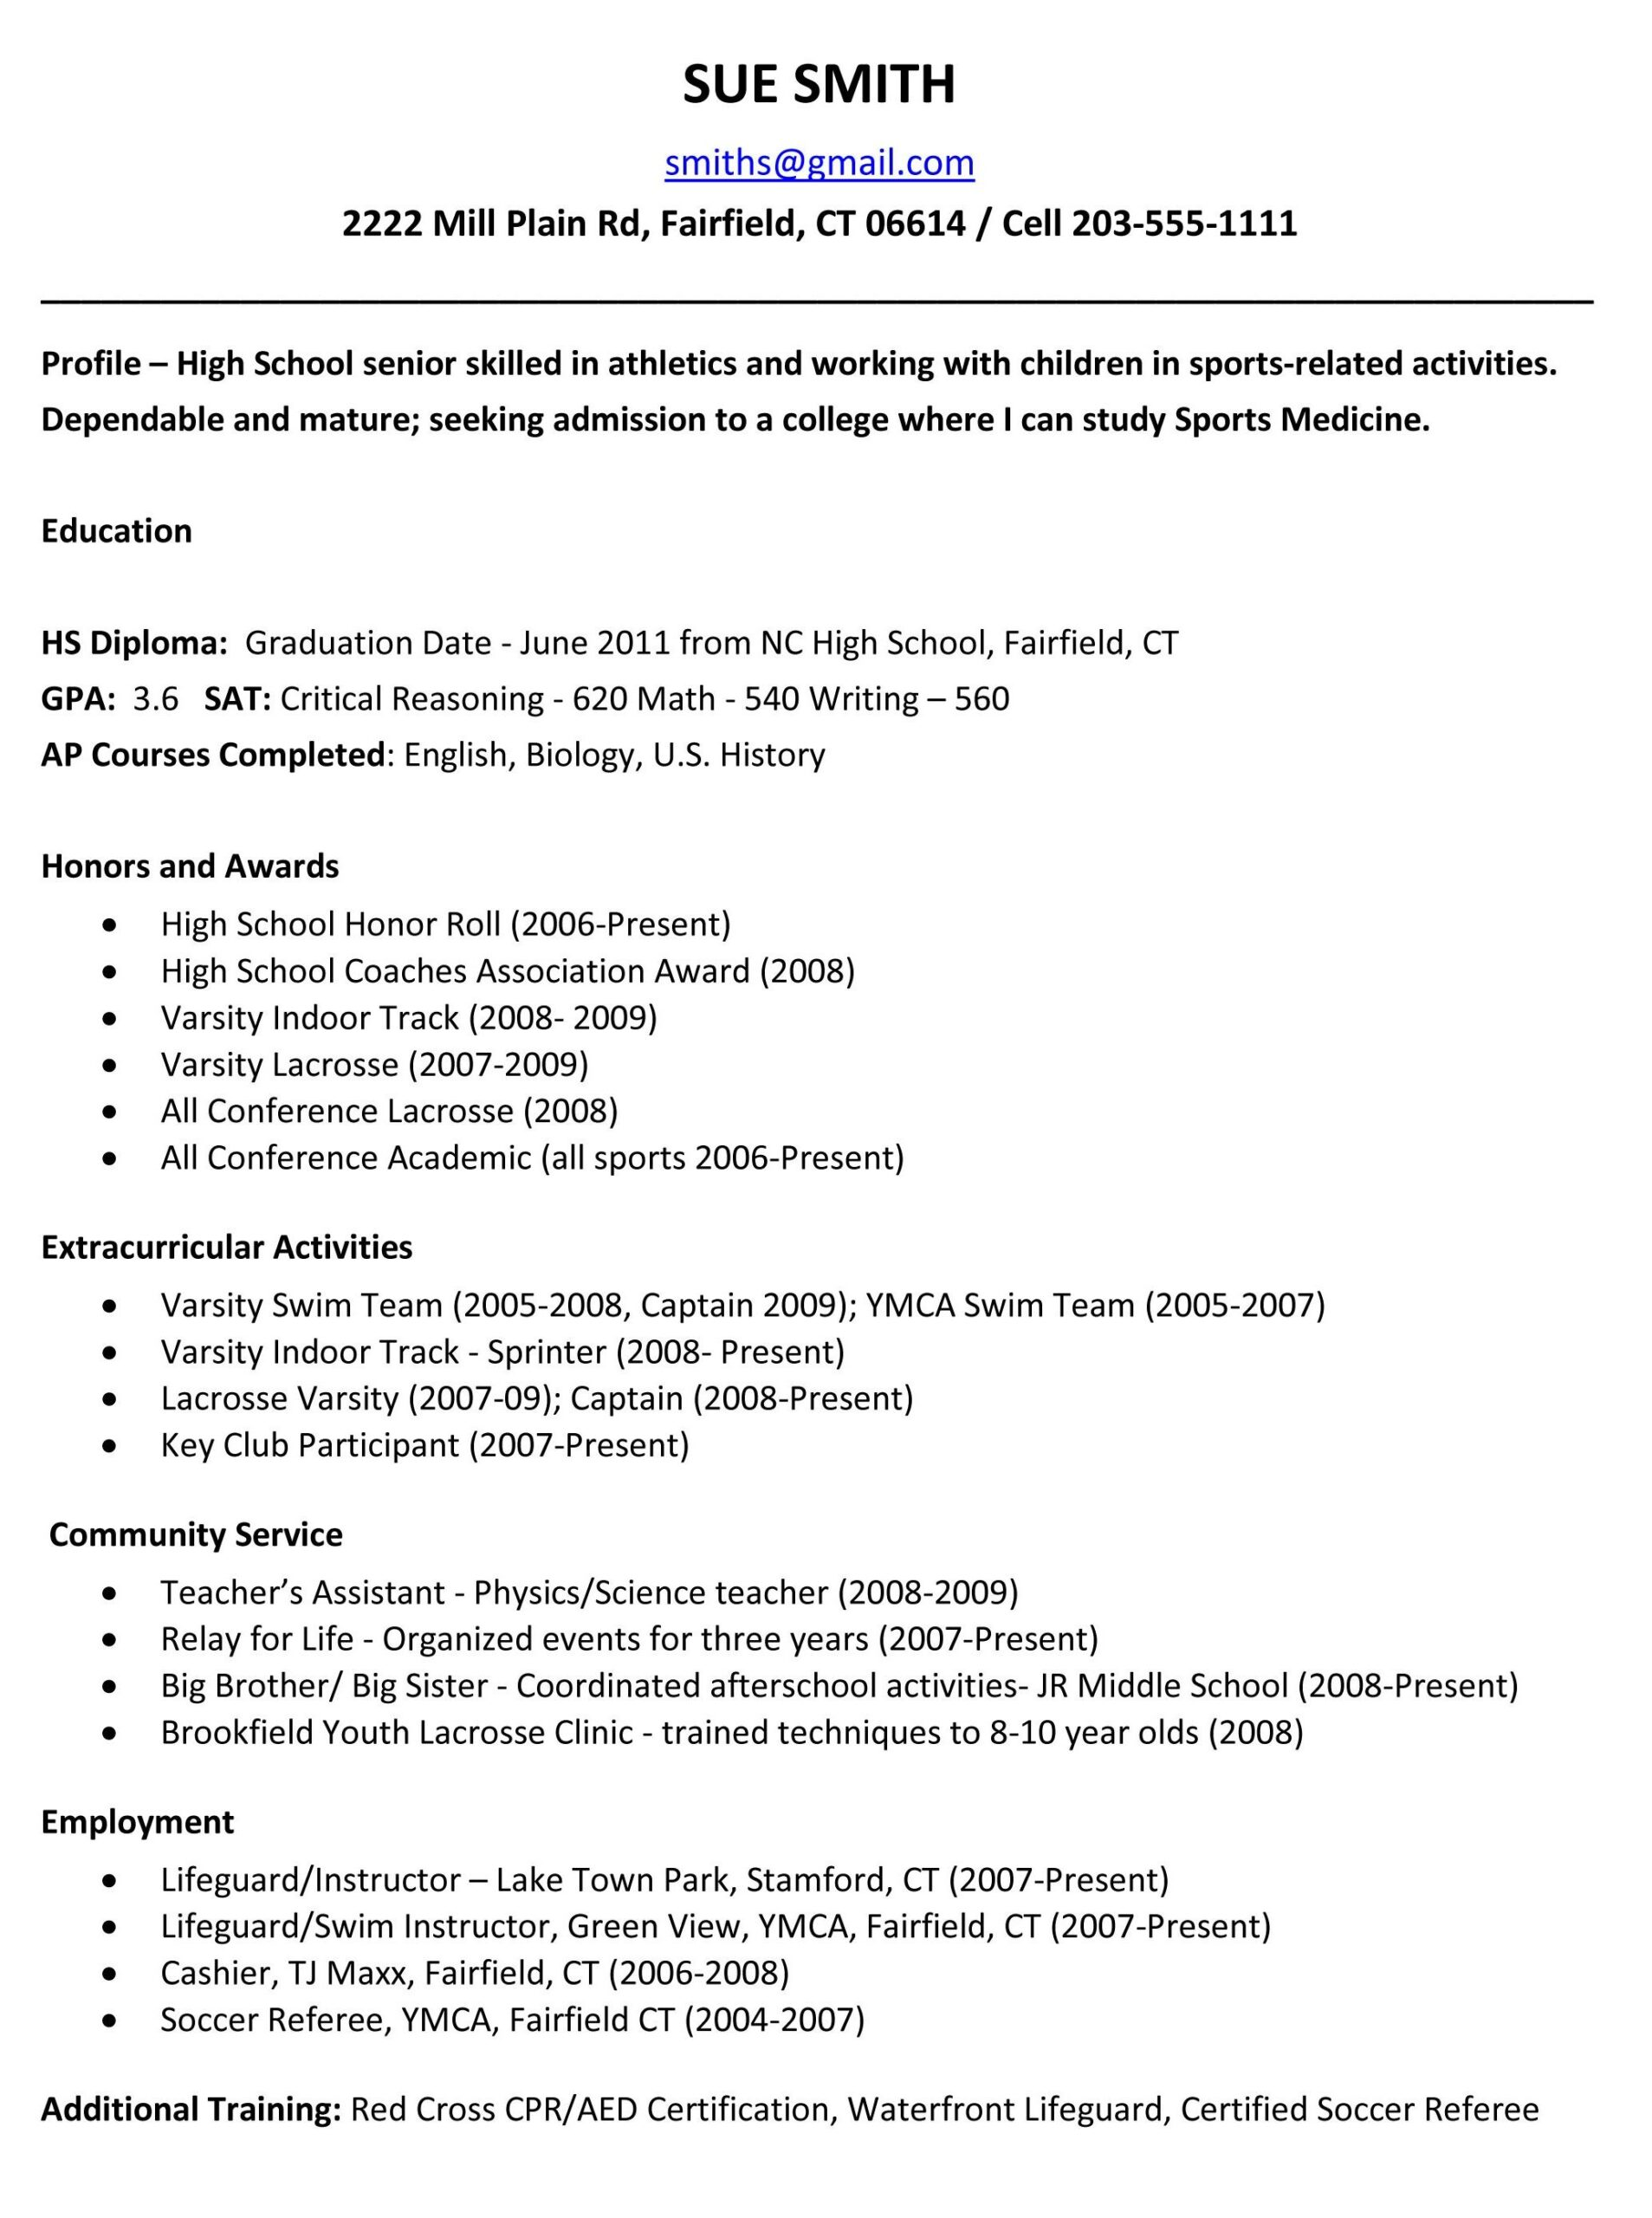 sample resumes high school resume template college application education student graduate Resume Education Resume High School Student